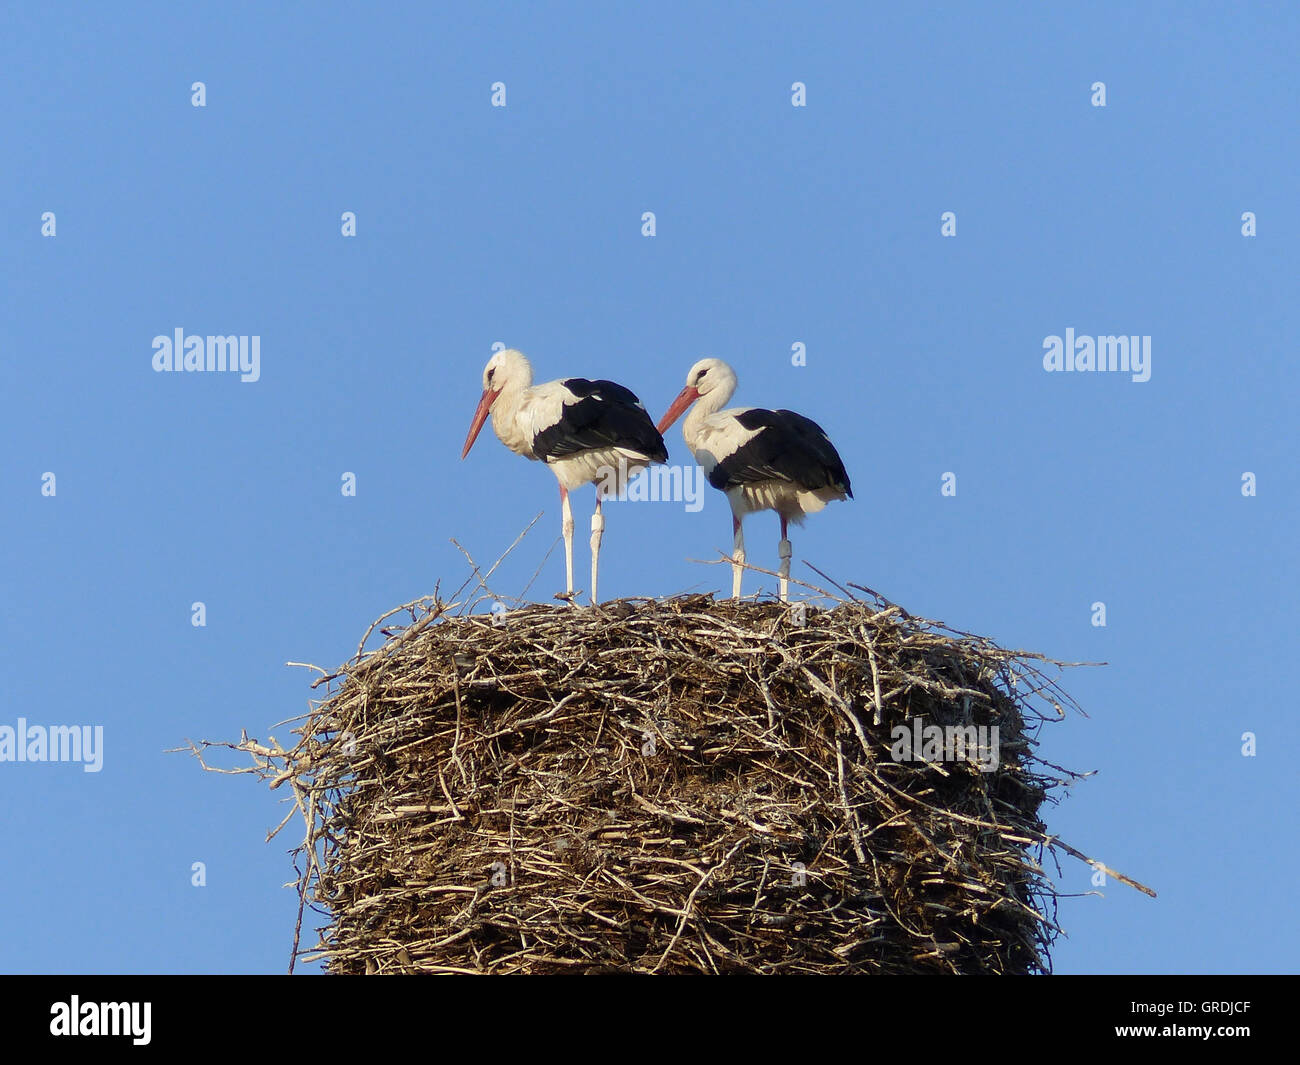 Two Storks In A Stork Nest - Stock Image